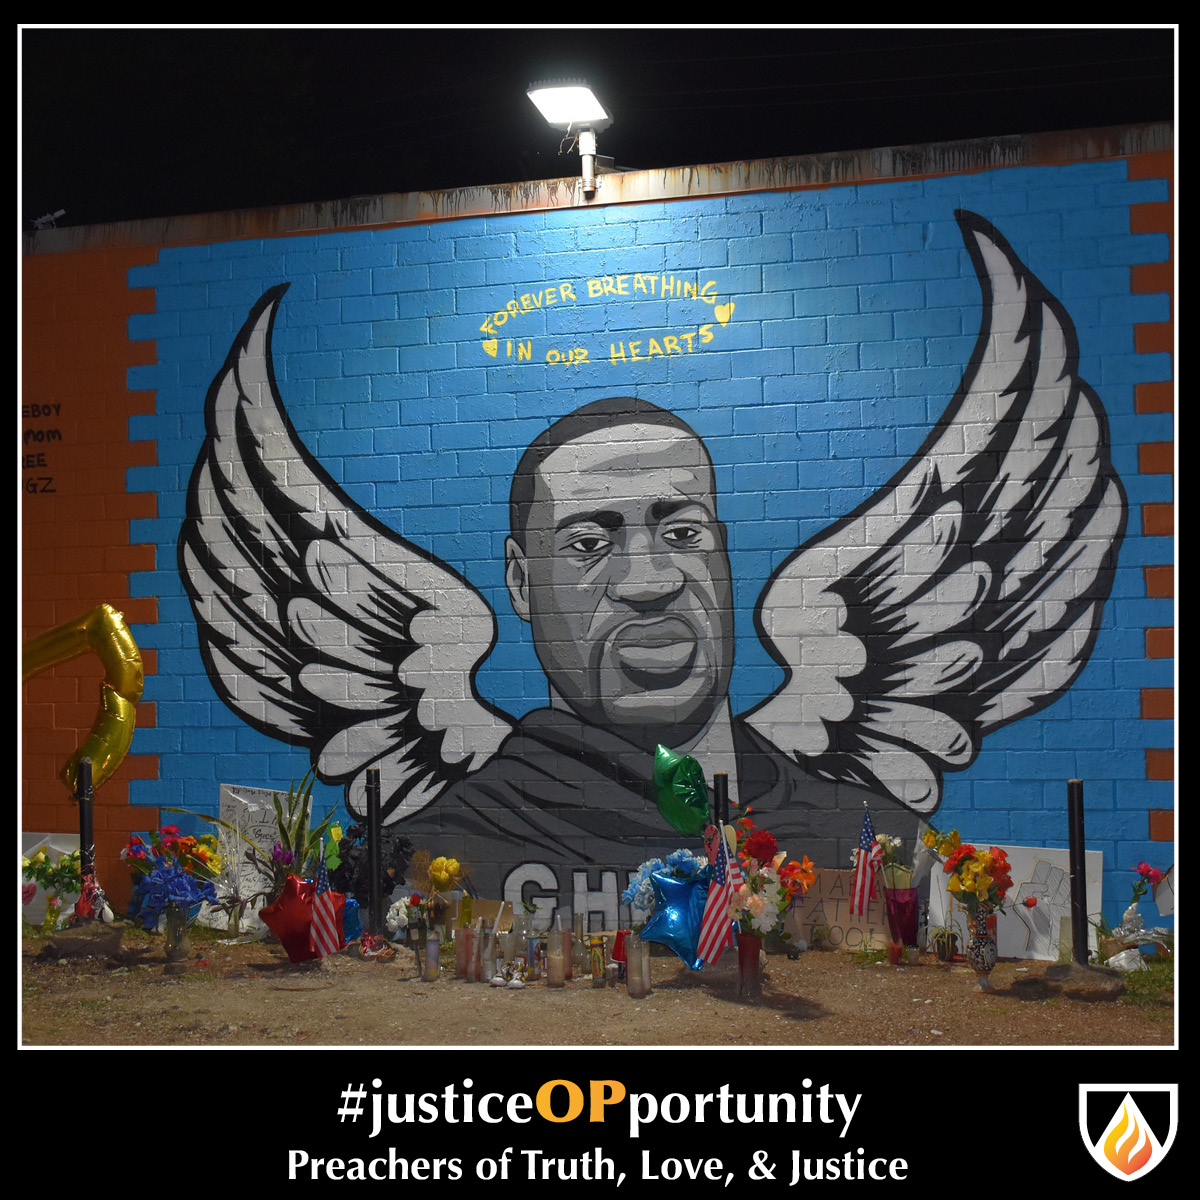 #justiceOPportunity Thursday—June 3